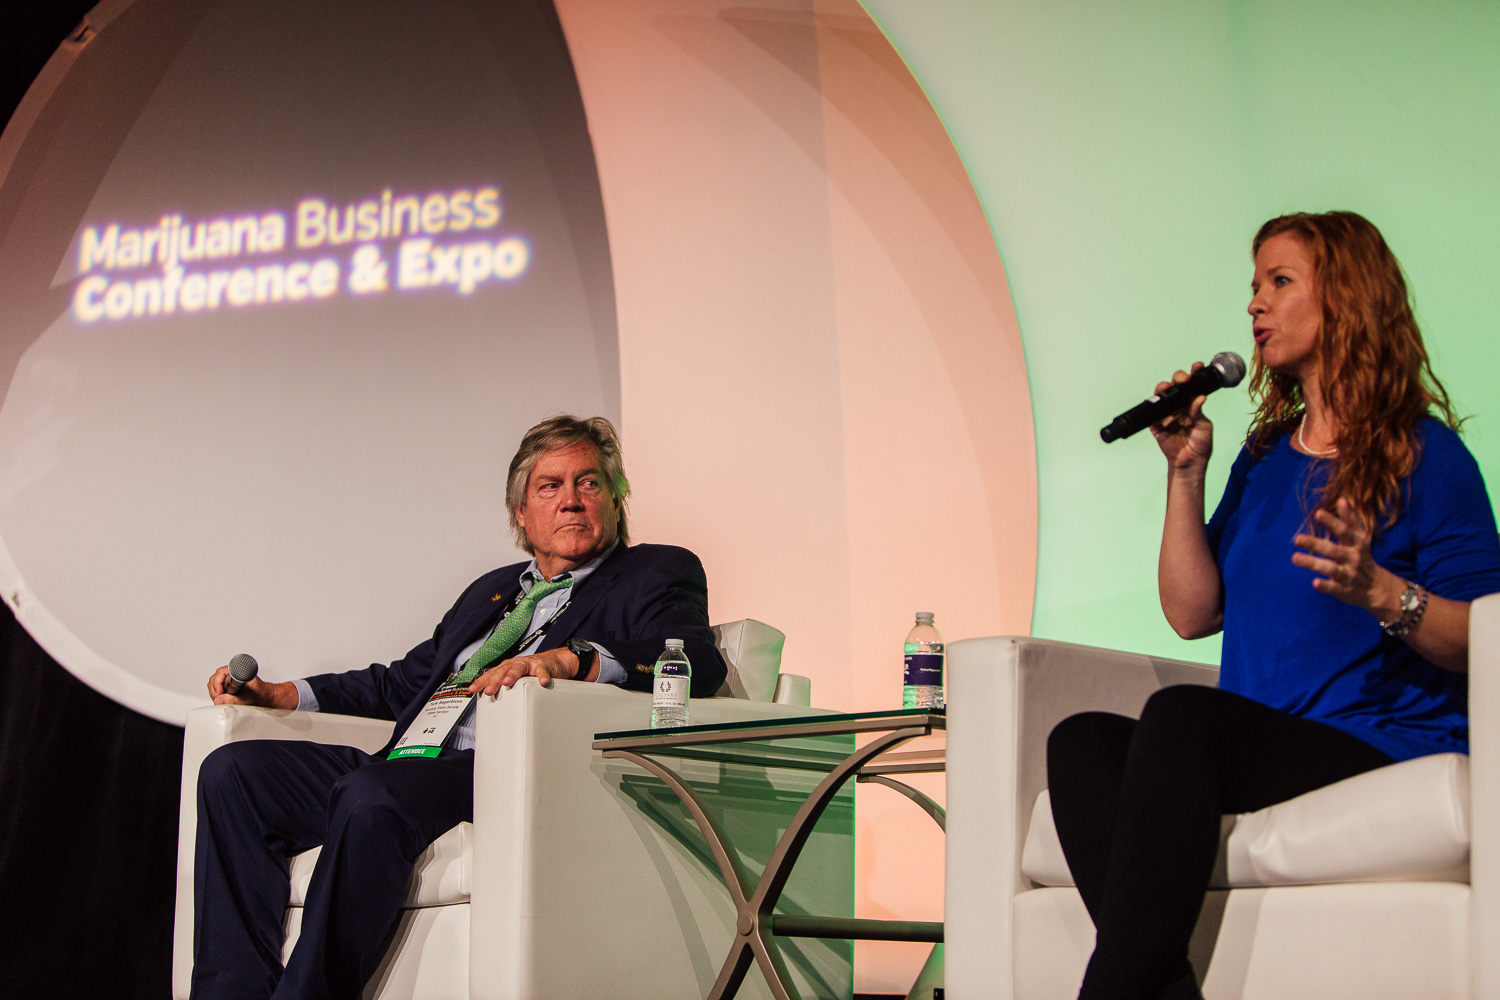 Dale Sky on stage next to Nevada State Senator Tick Segerblom at the Marijuana Business Conference & Expo November.